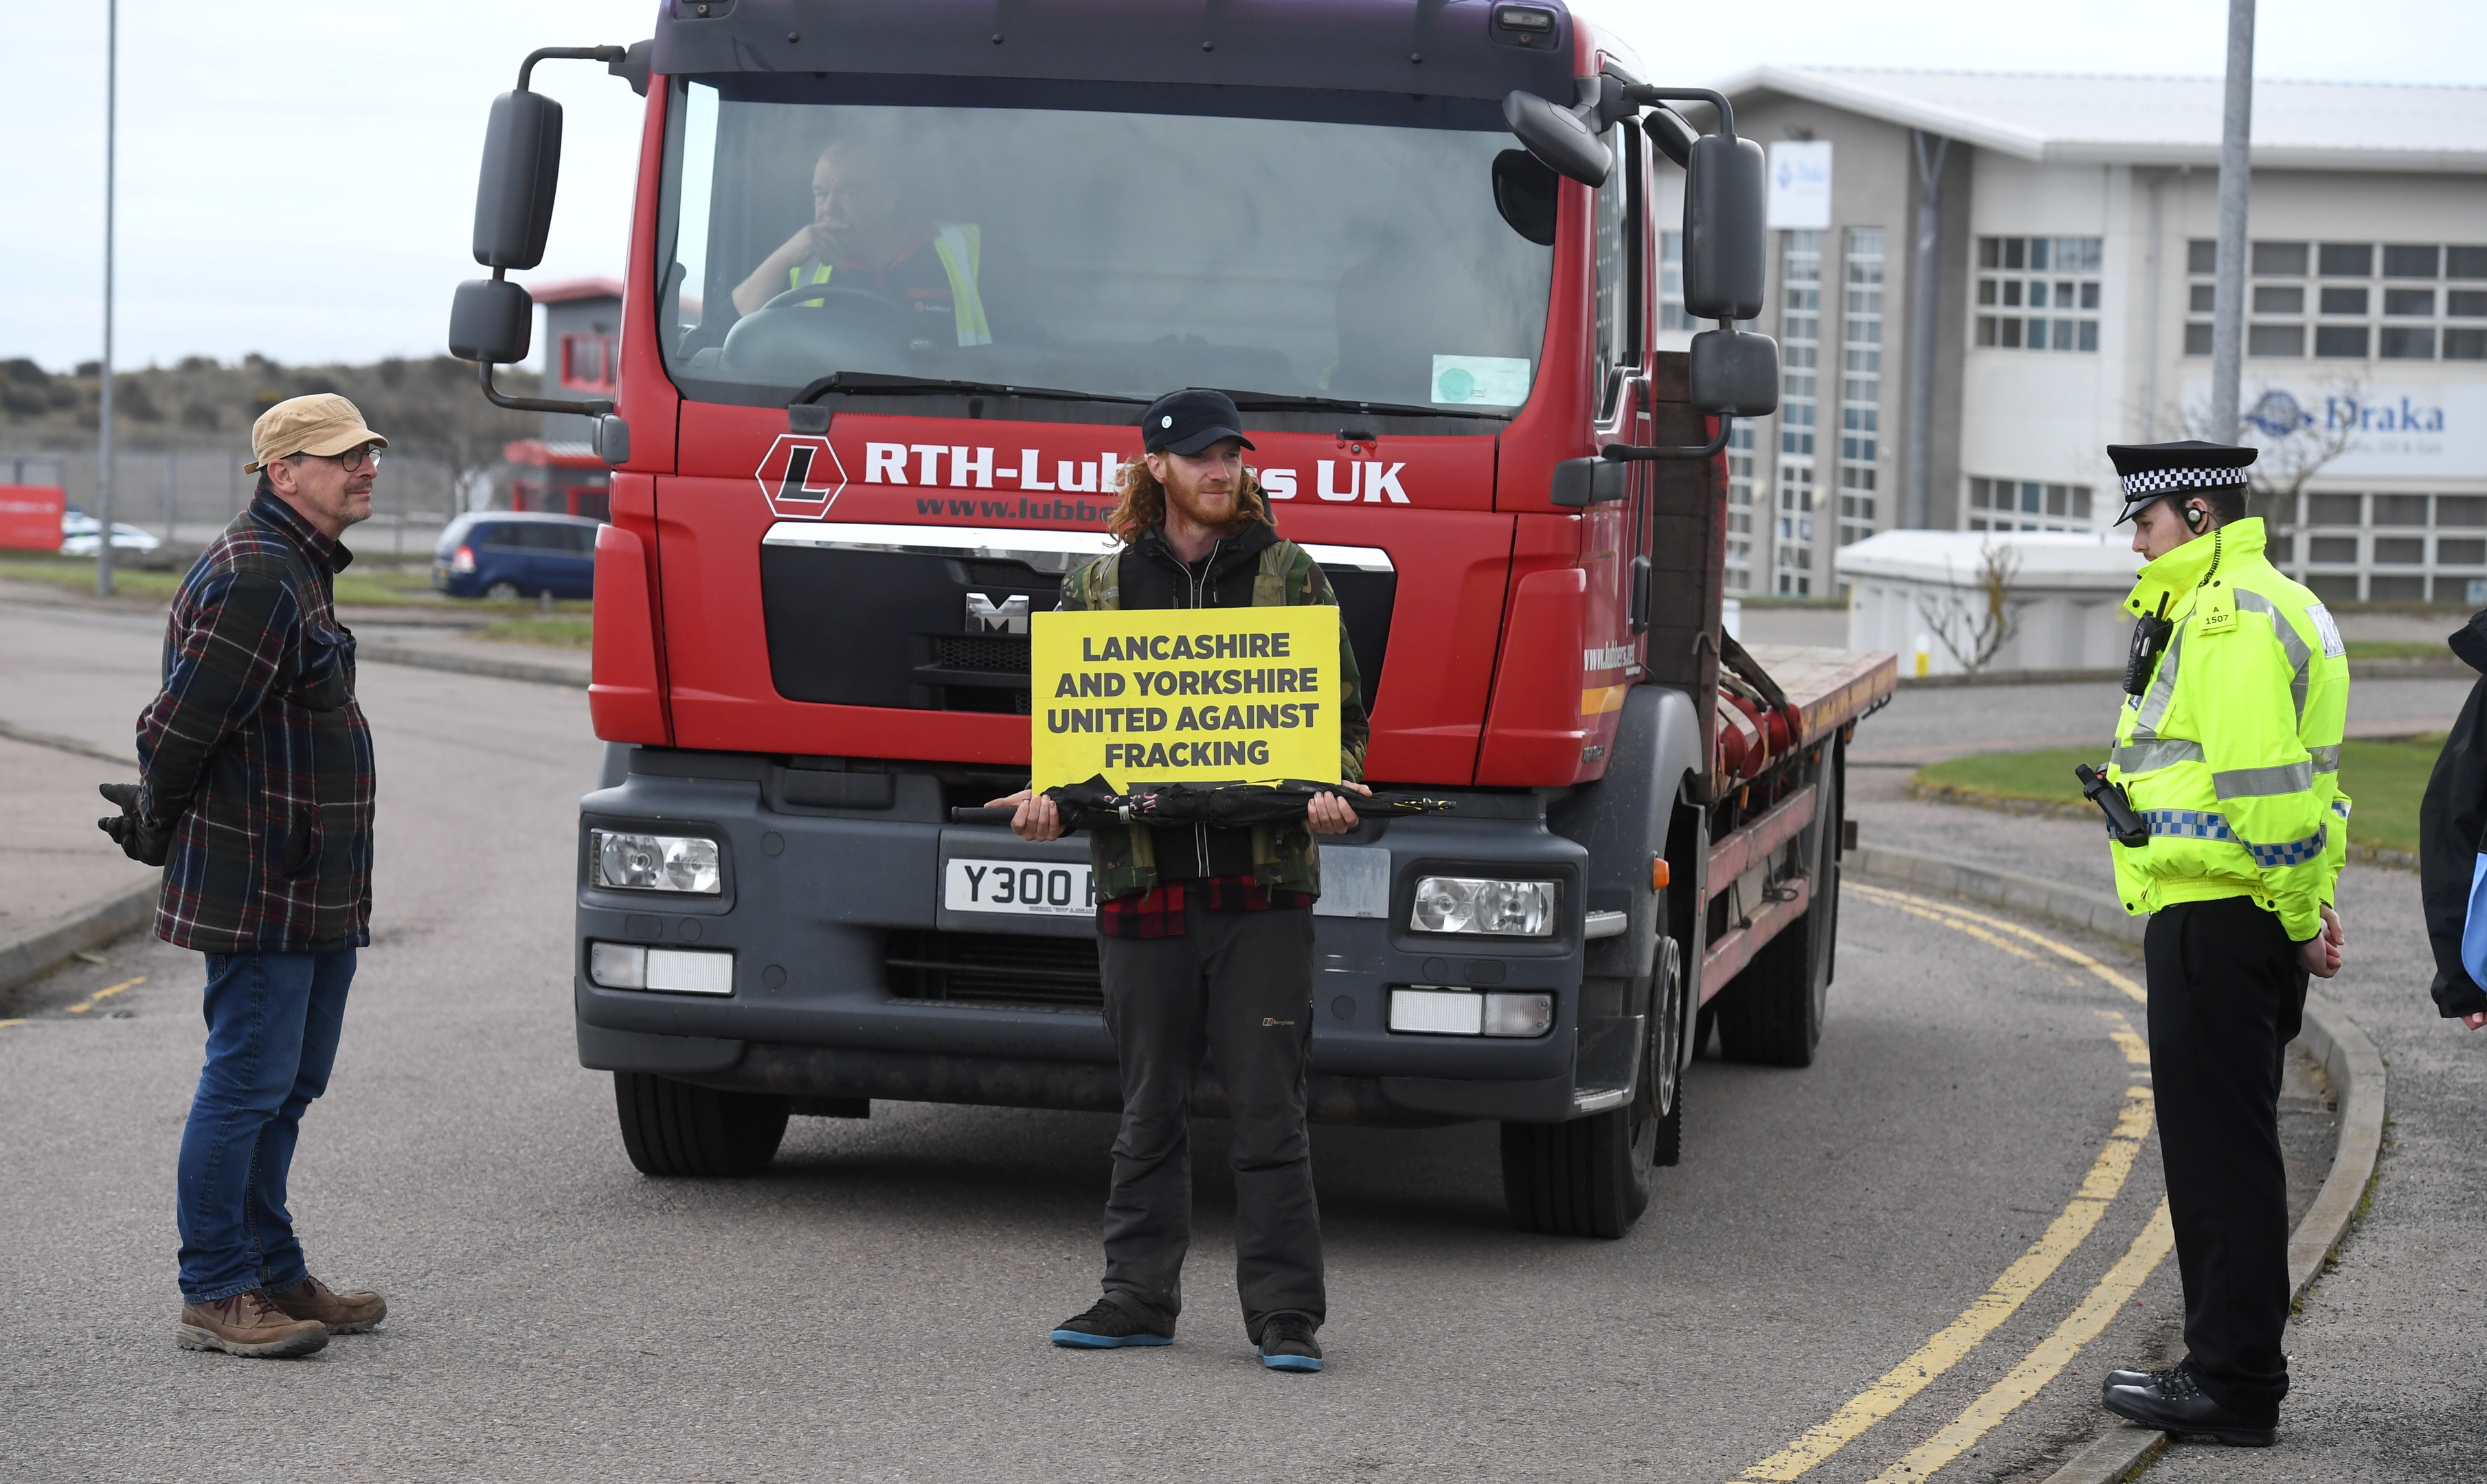 Protestors at the site in Aberdeen.